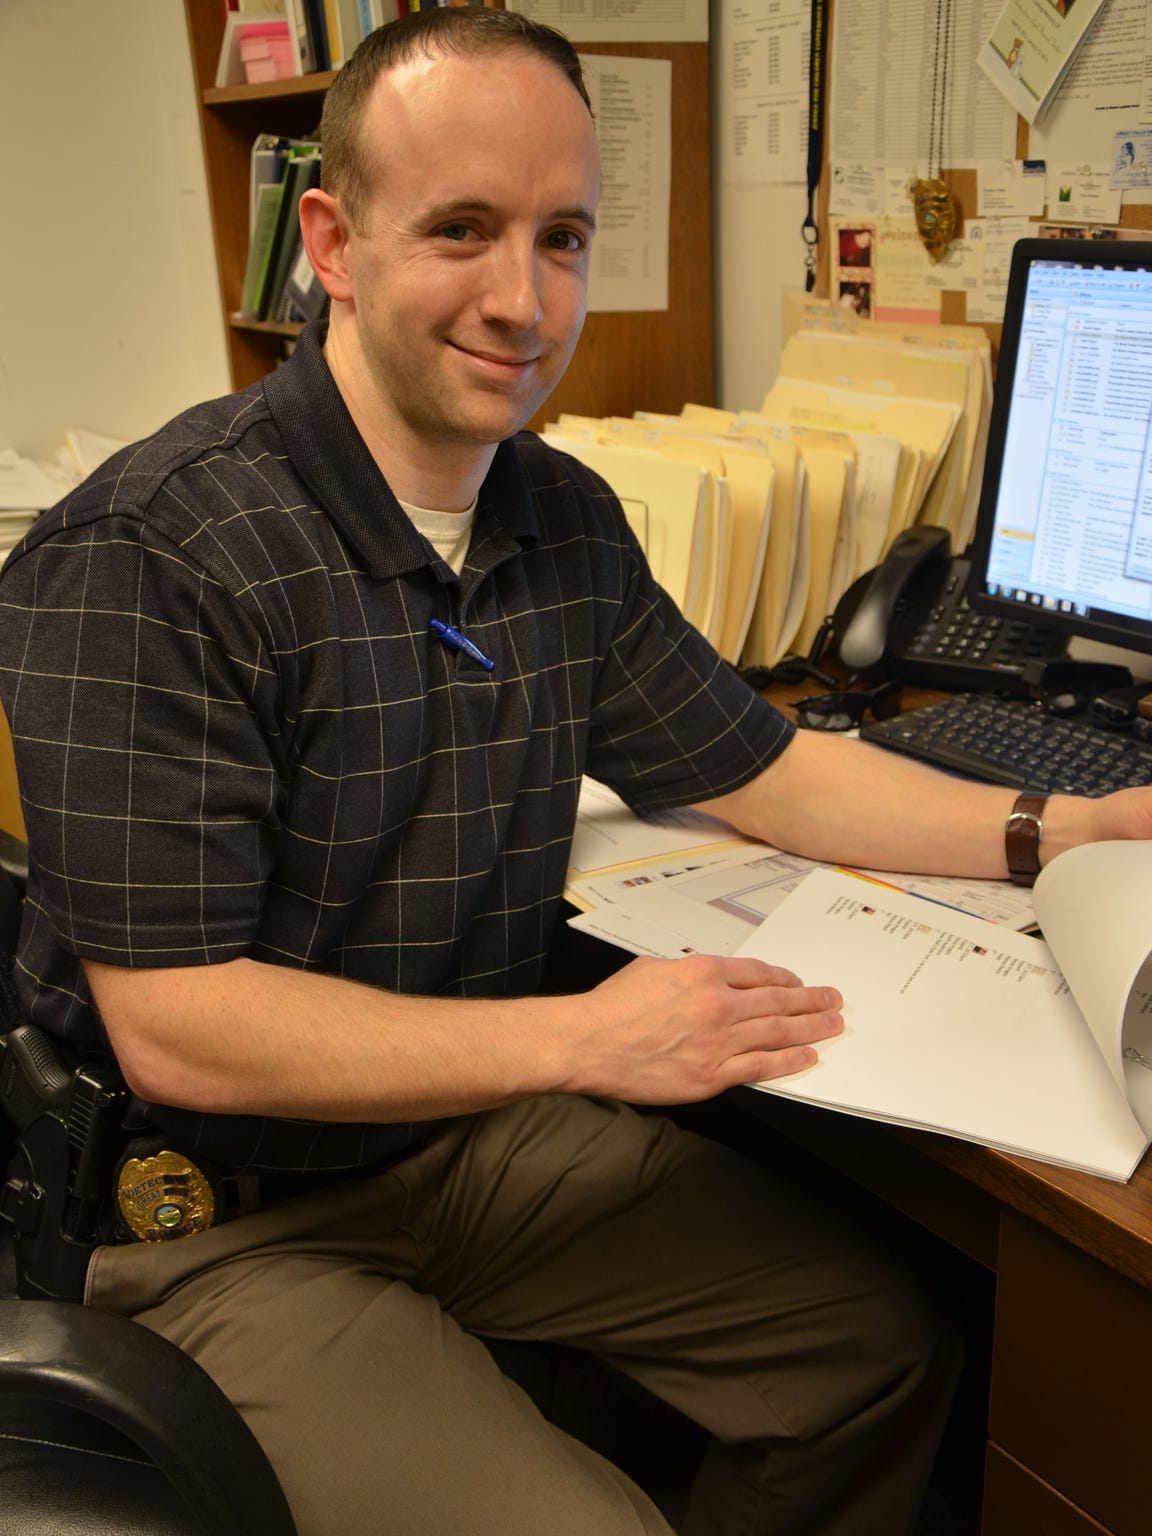 Great Falls Police Detective Adam Price works 25 to